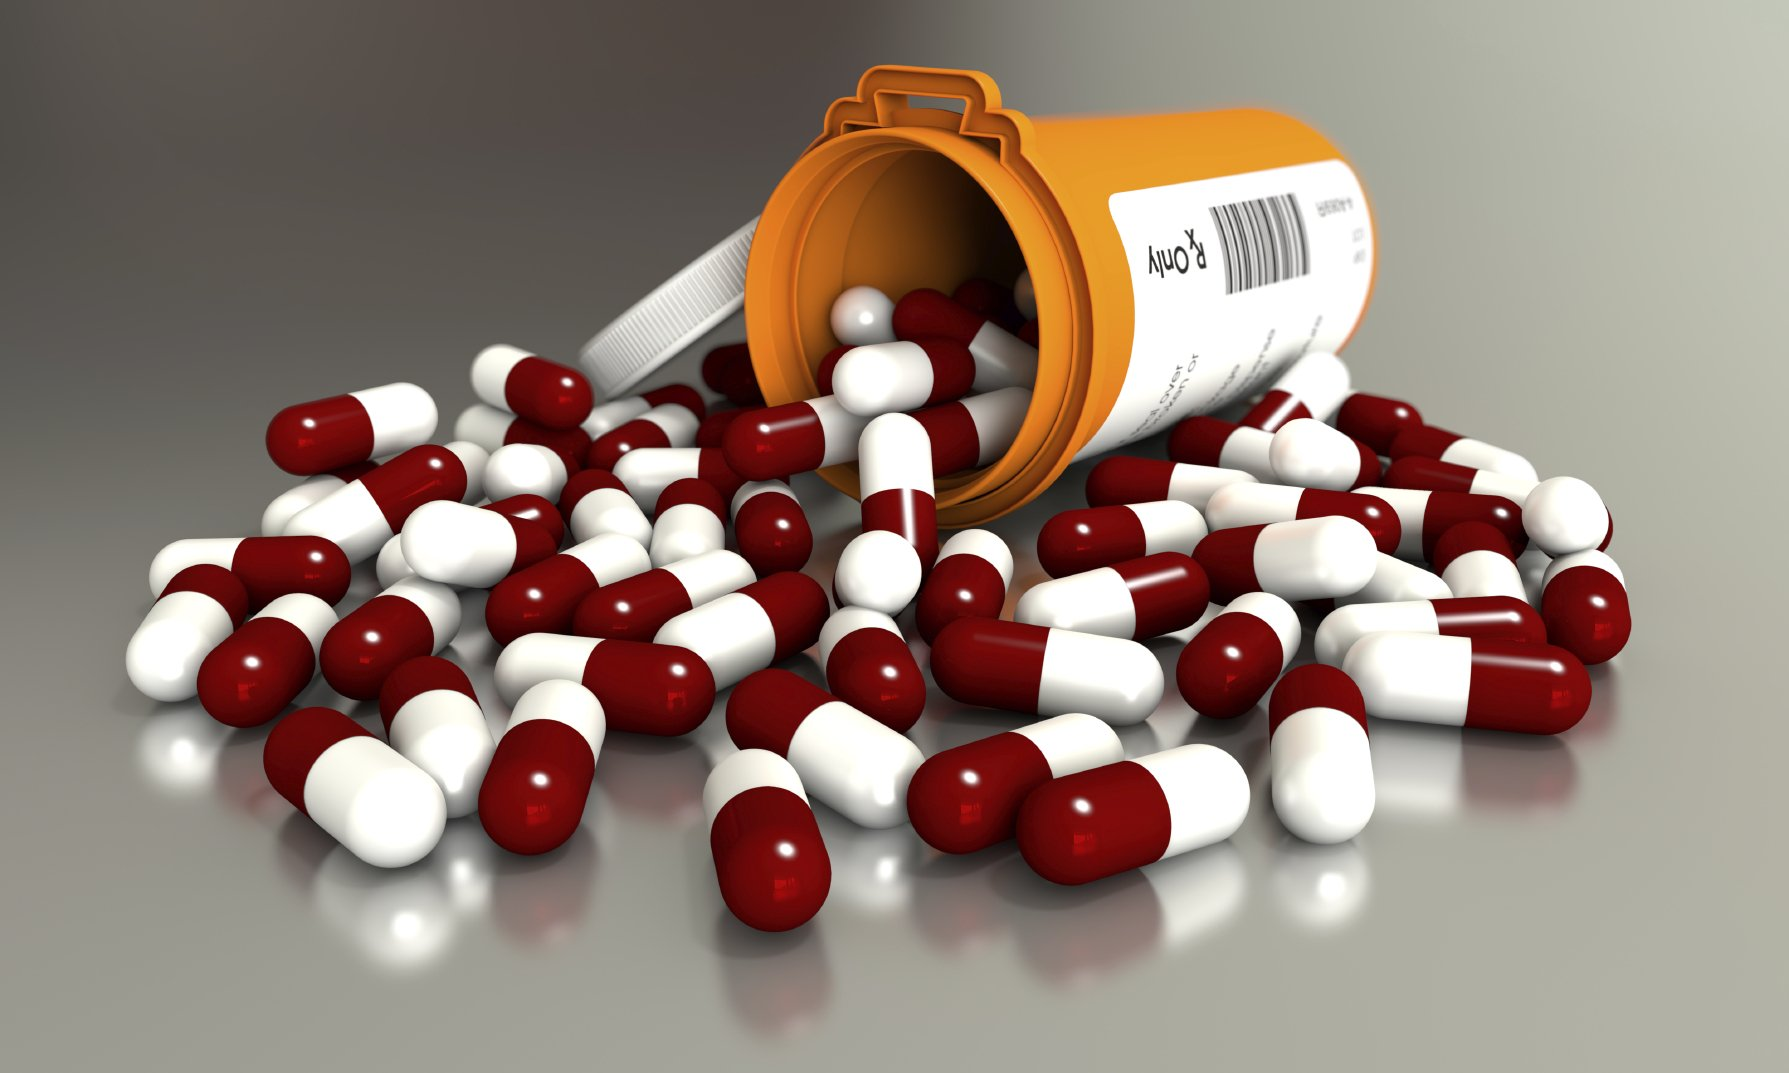 Prescription medication spilling out of container